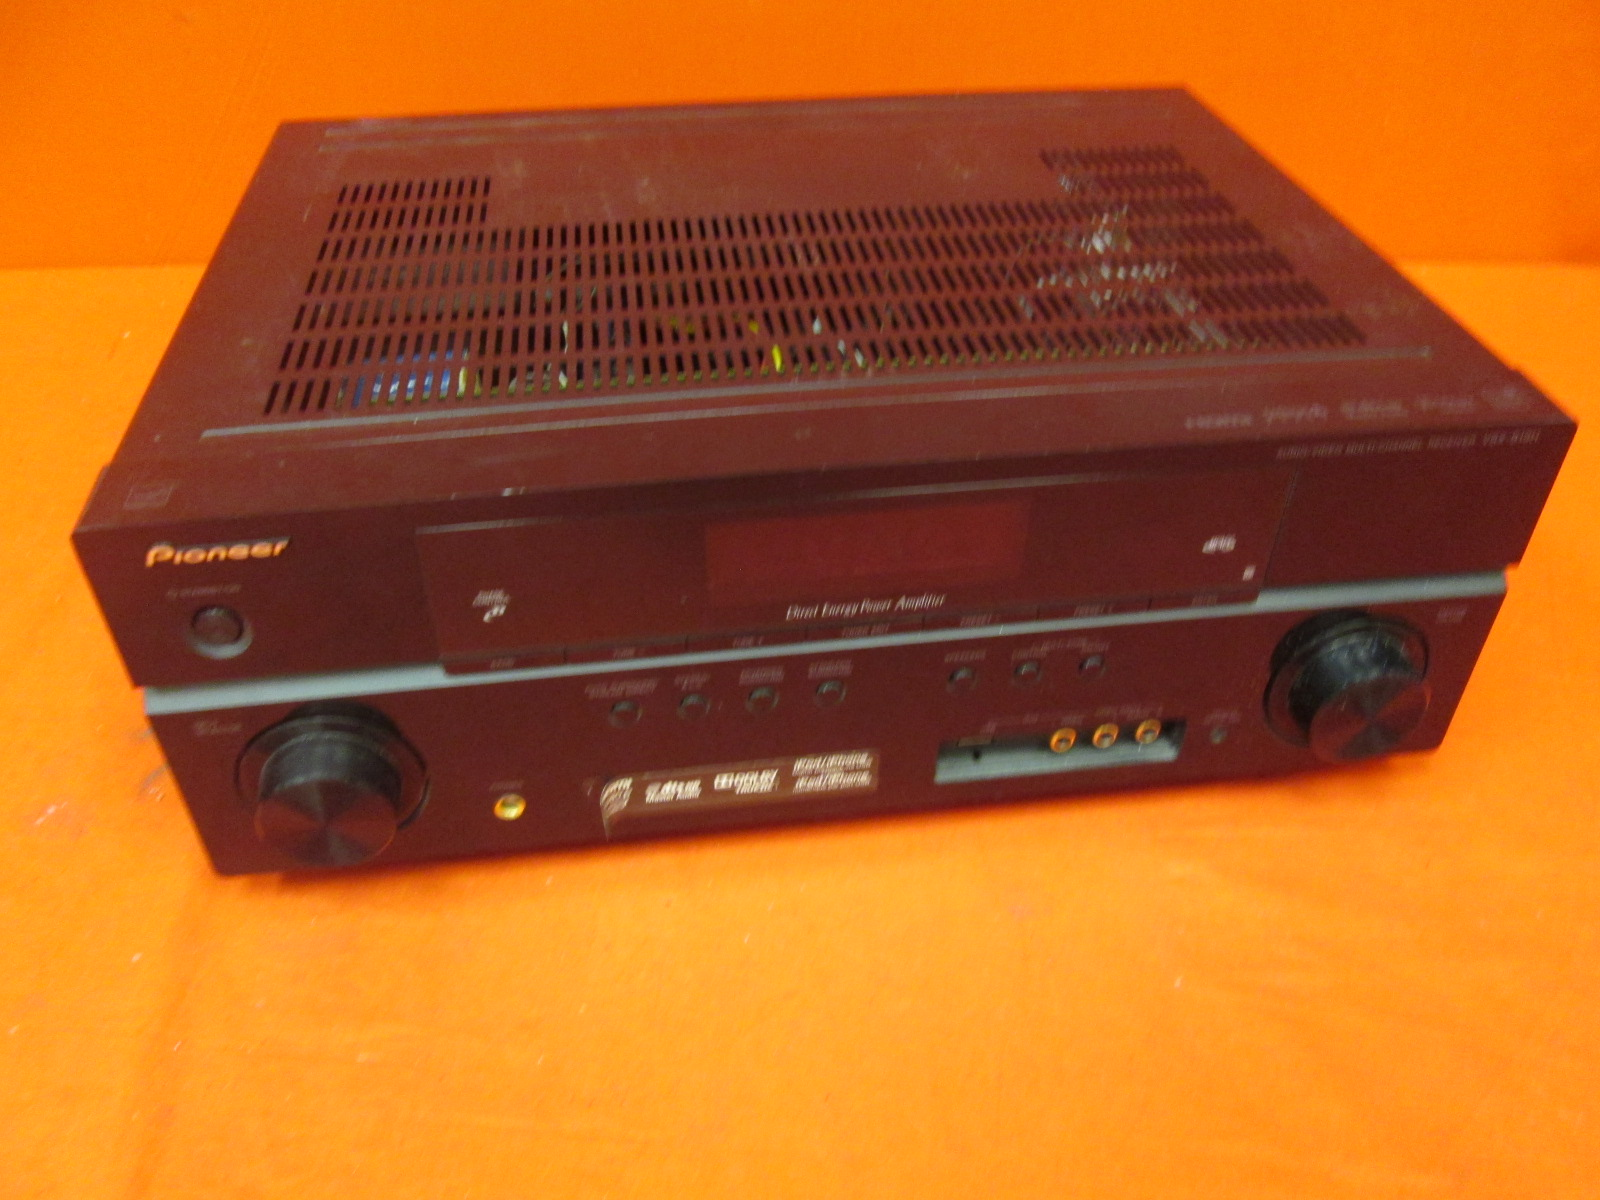 Broken Pioneer Vsx 819H 5.1 Channel 110 Watt Receiver